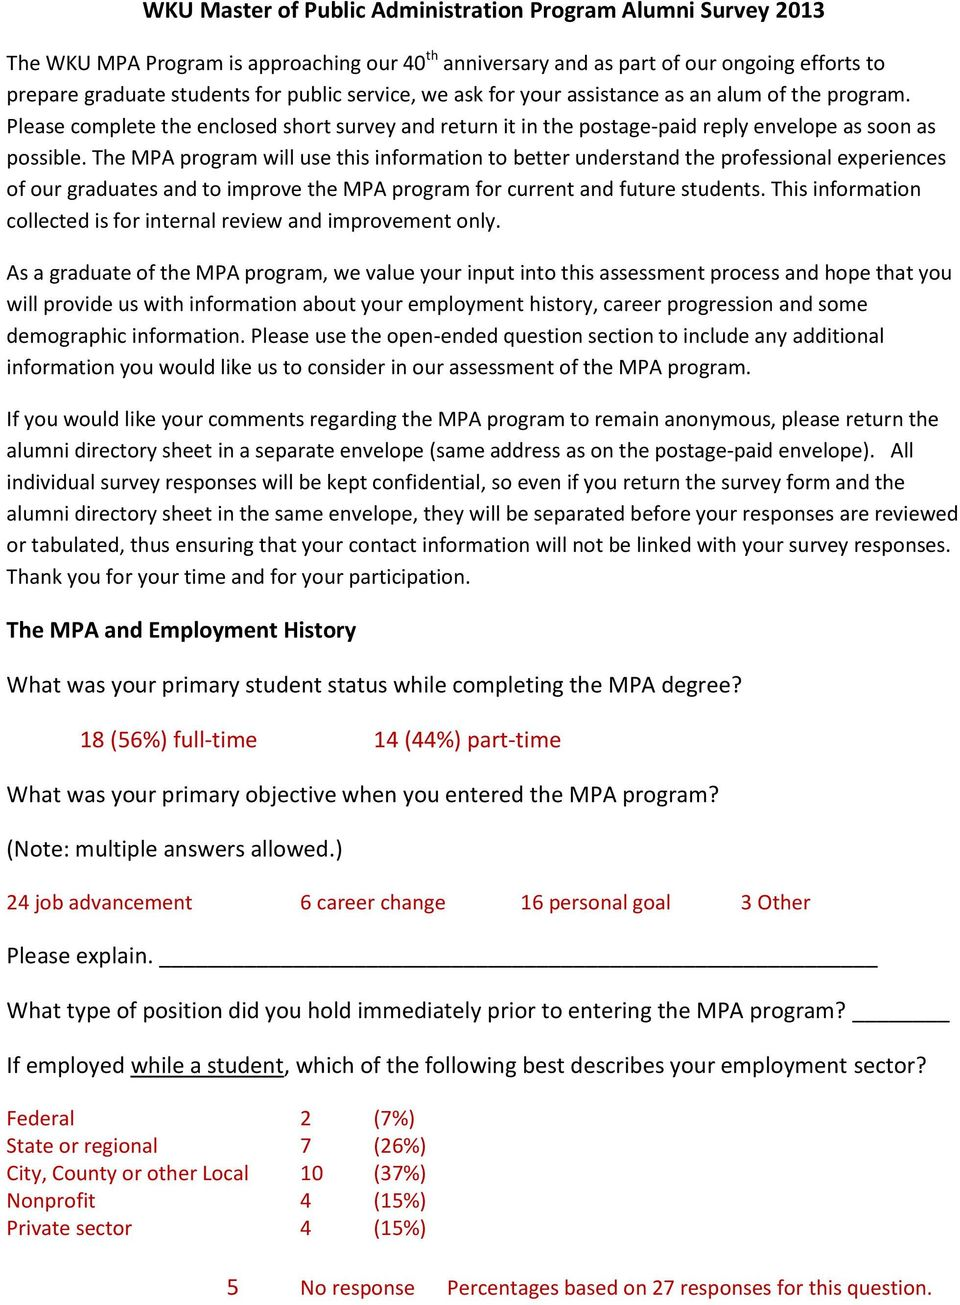 The MPA program will use this information to better understand the professional experiences of our graduates and to improve the MPA program for current and future students.